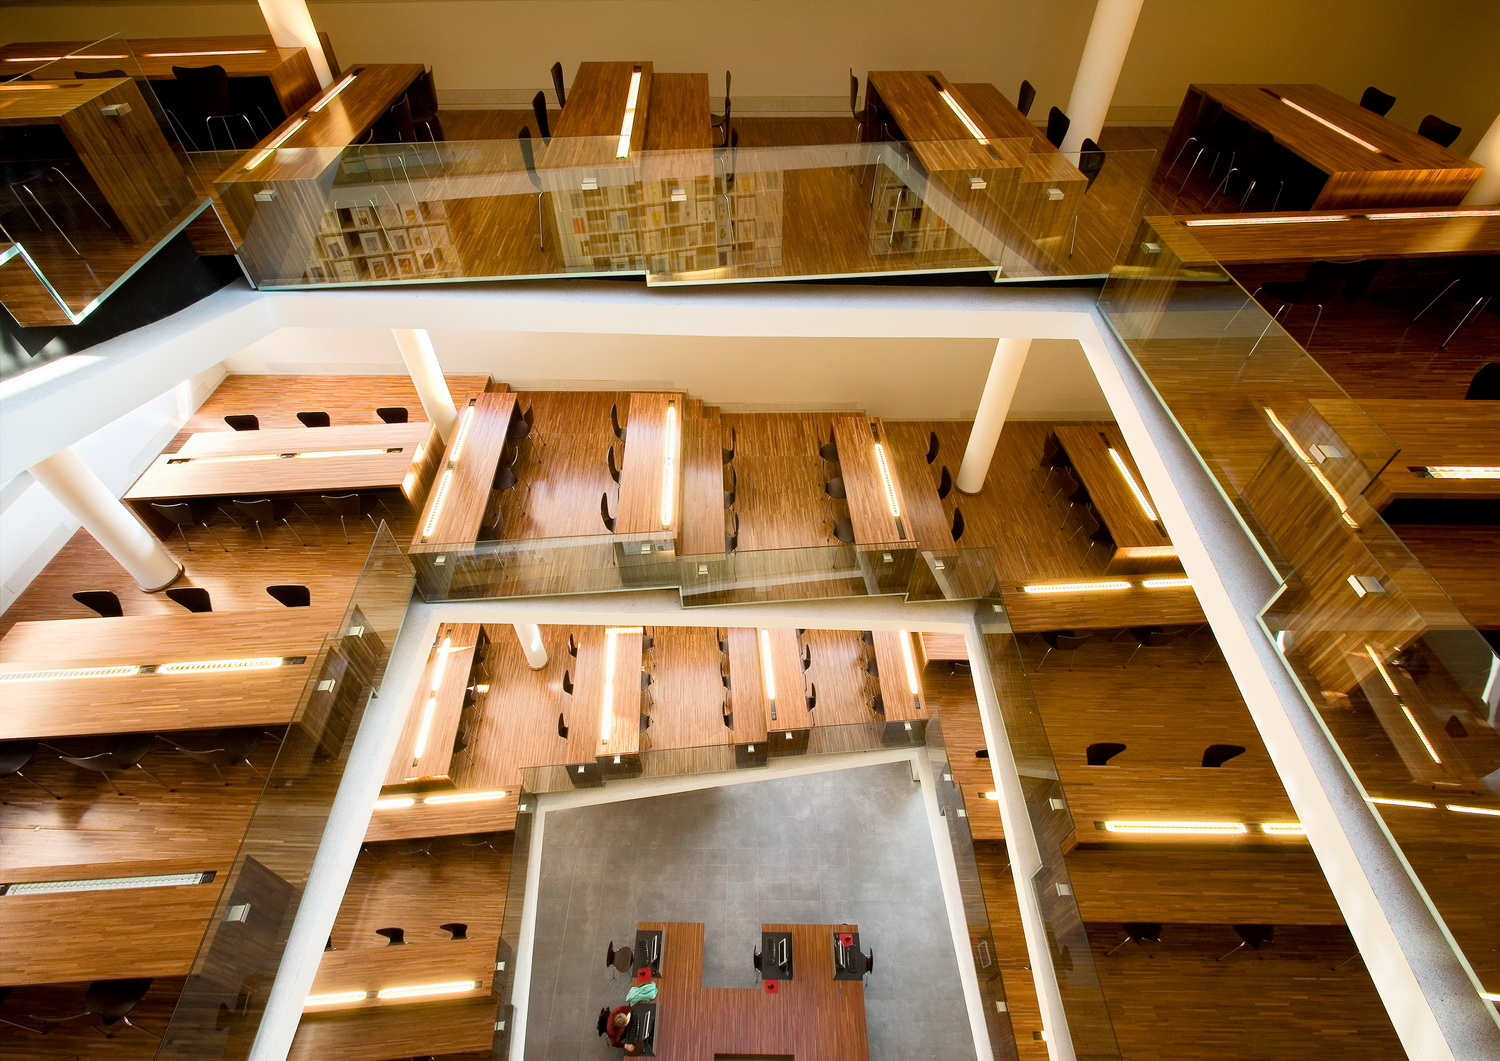 view of reading tables from upper level     These ramps are the reading rooms. They are levelled with mahogany platforms on which the reading tables are set. These are also made of mahogany block-wood and house the up-lights for ambient lighting.